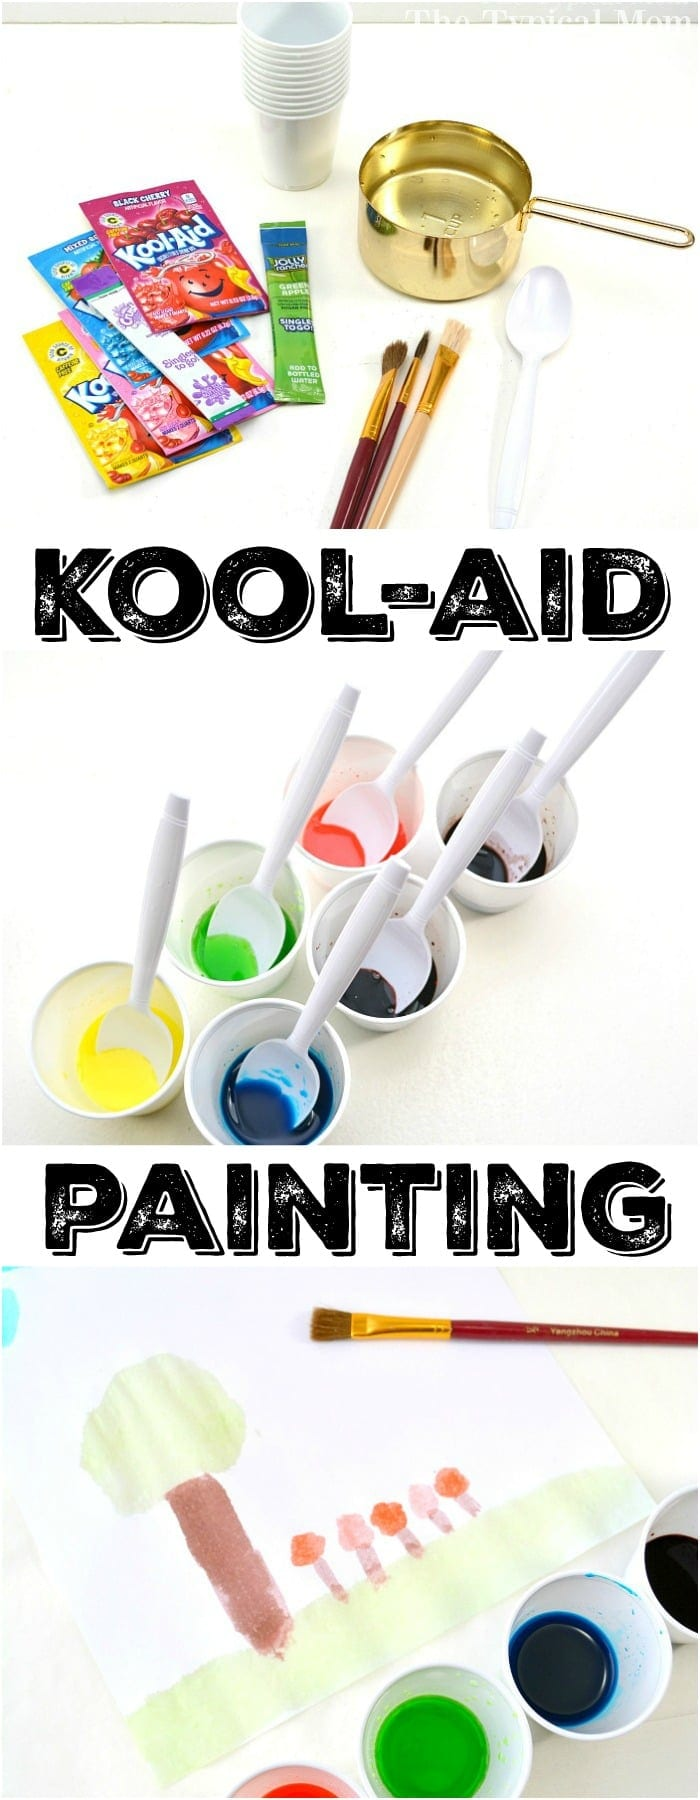 This is how easy it is to make Kool Aid paint so your kids can watercolor safely at home! A fun and inexpensive craft for kids that is easy to put together. Free from chemicals it's a great activity for Preschool children and toddlers too! Painting has never been so fun, and yummy too. #kidscrafts #preschool #toddler #craft #safe #paint #painting #safe #paints #homemade #koolaid #watercolor